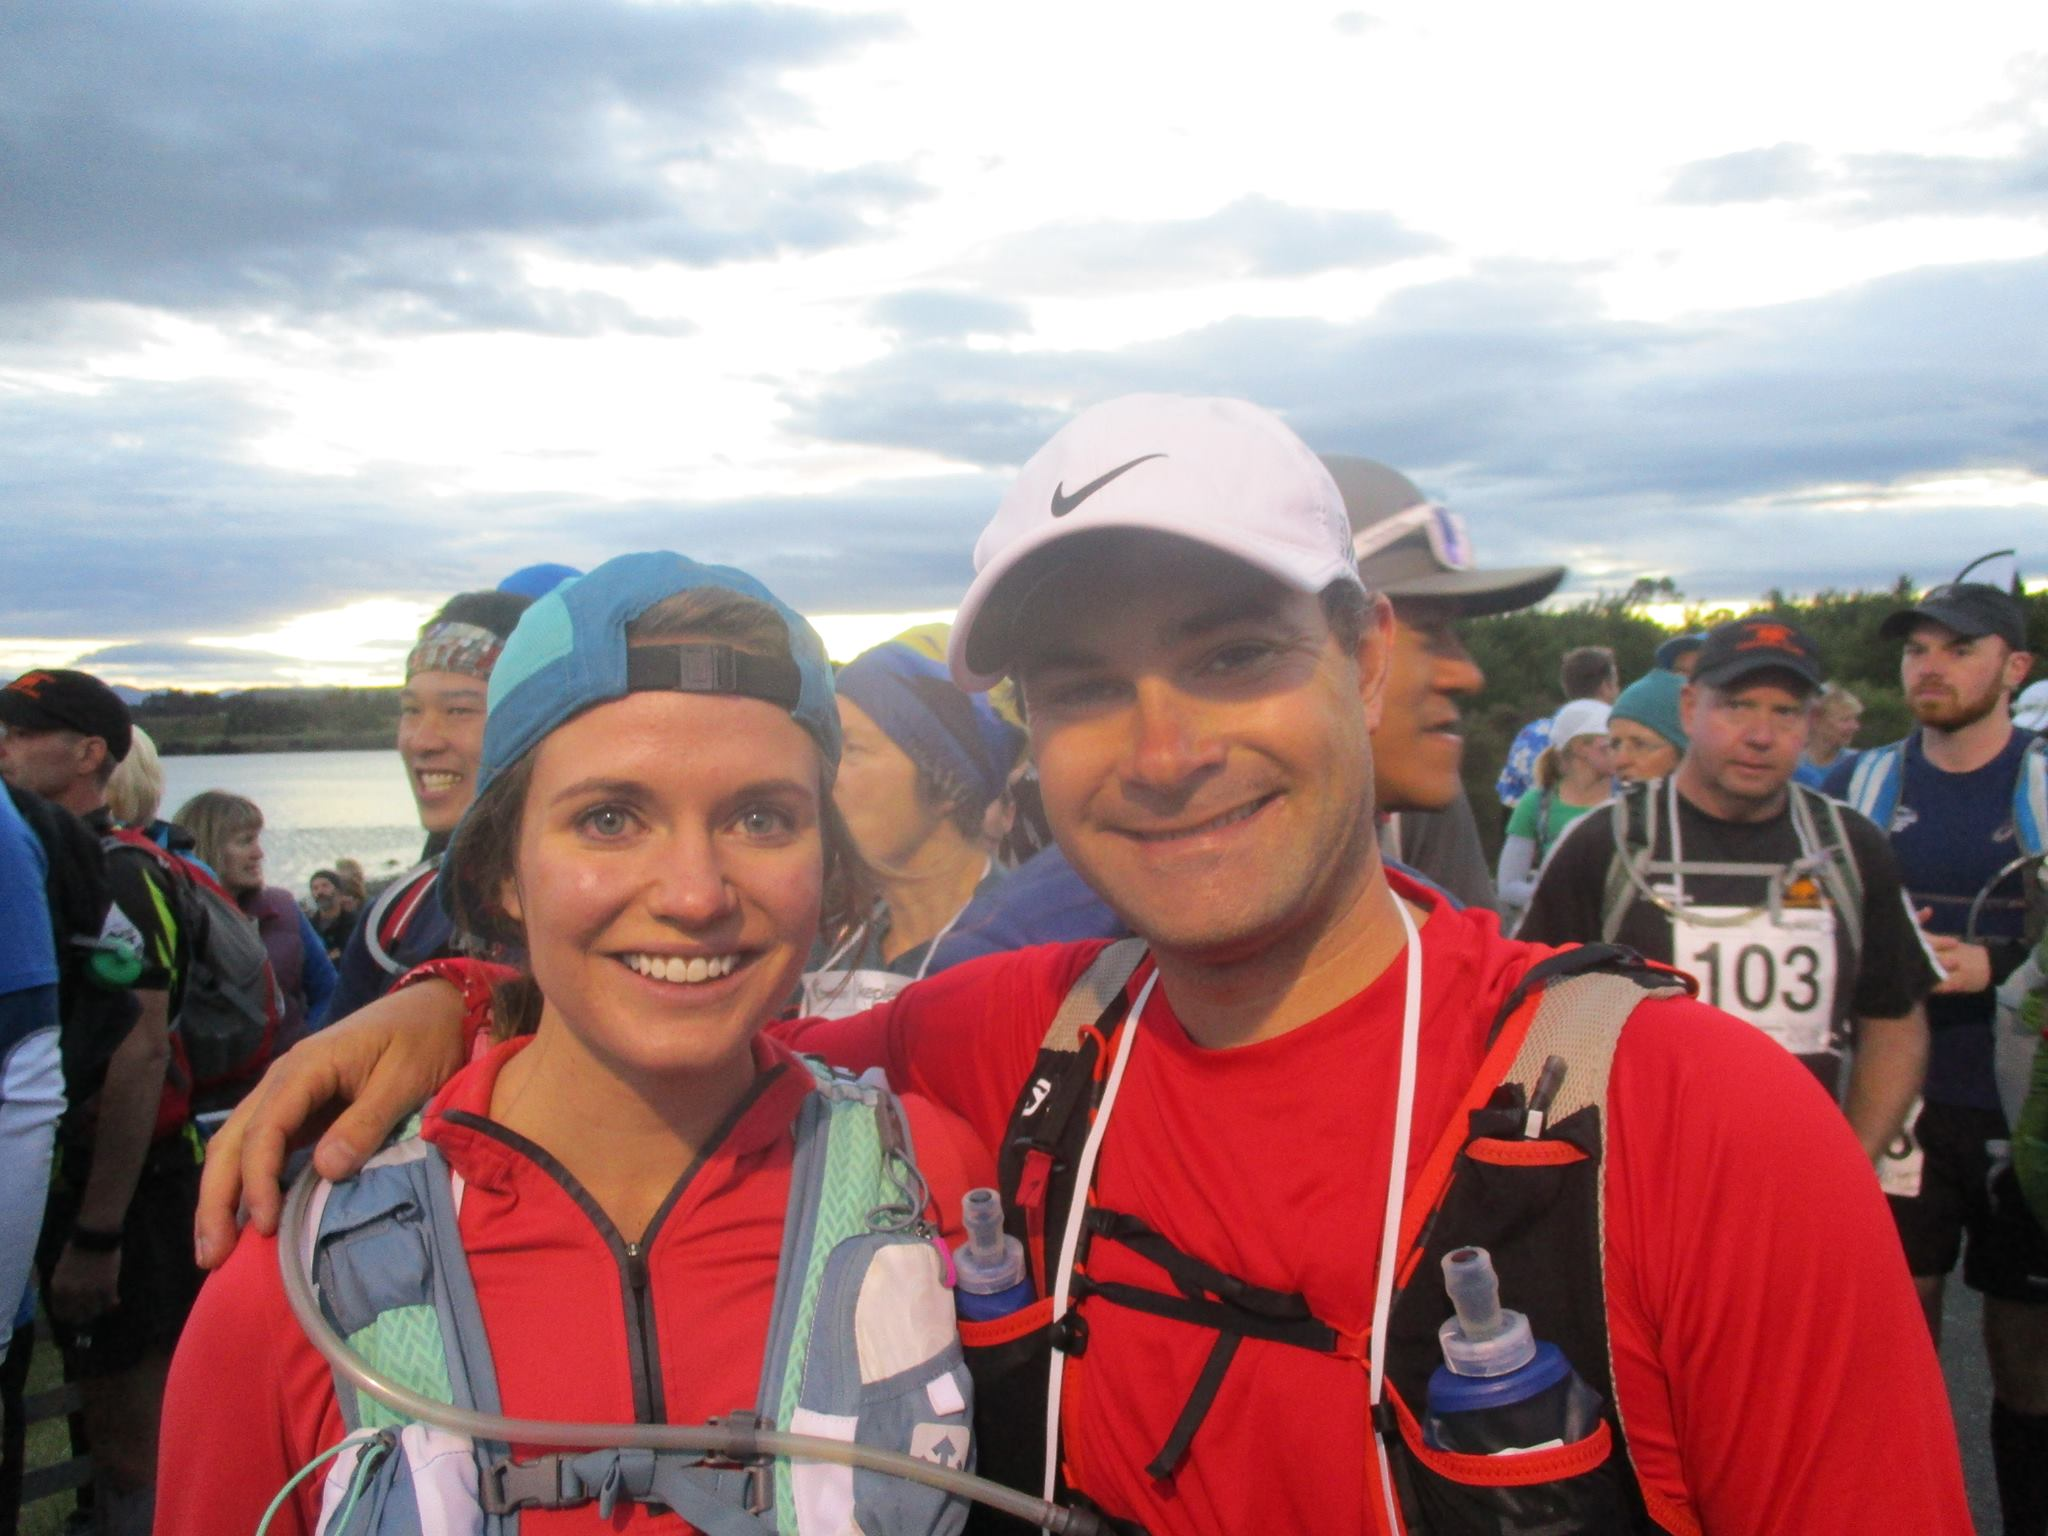 Pre-race photo with Mark